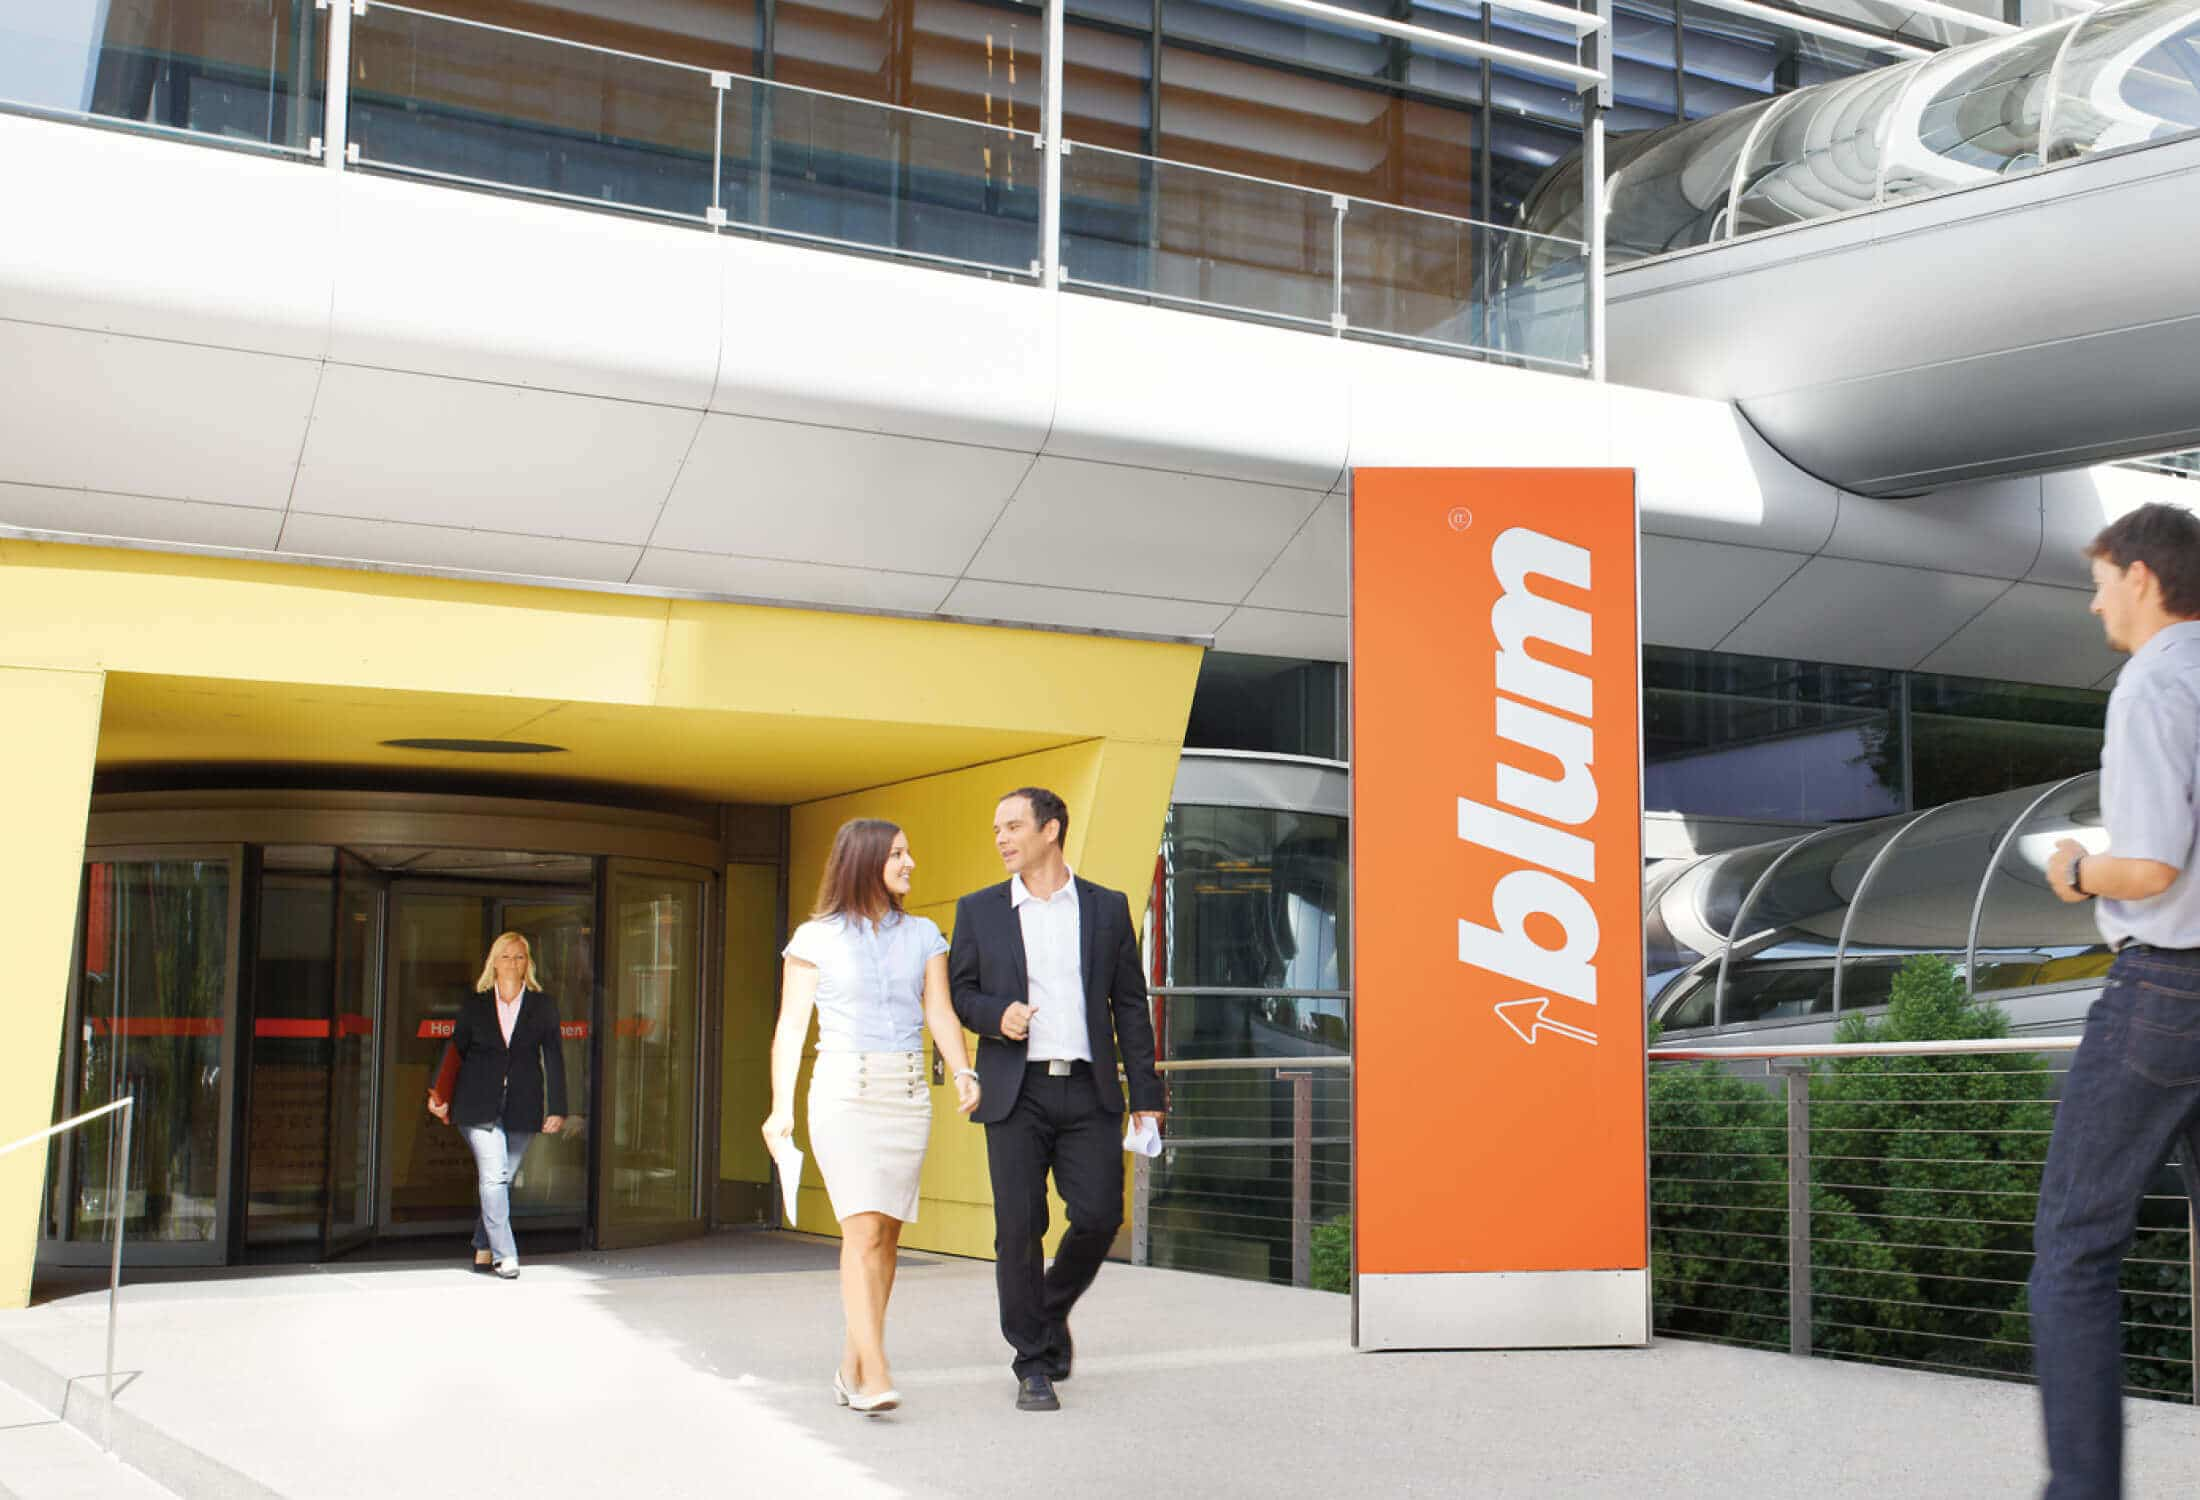 Print blum Corporate Design